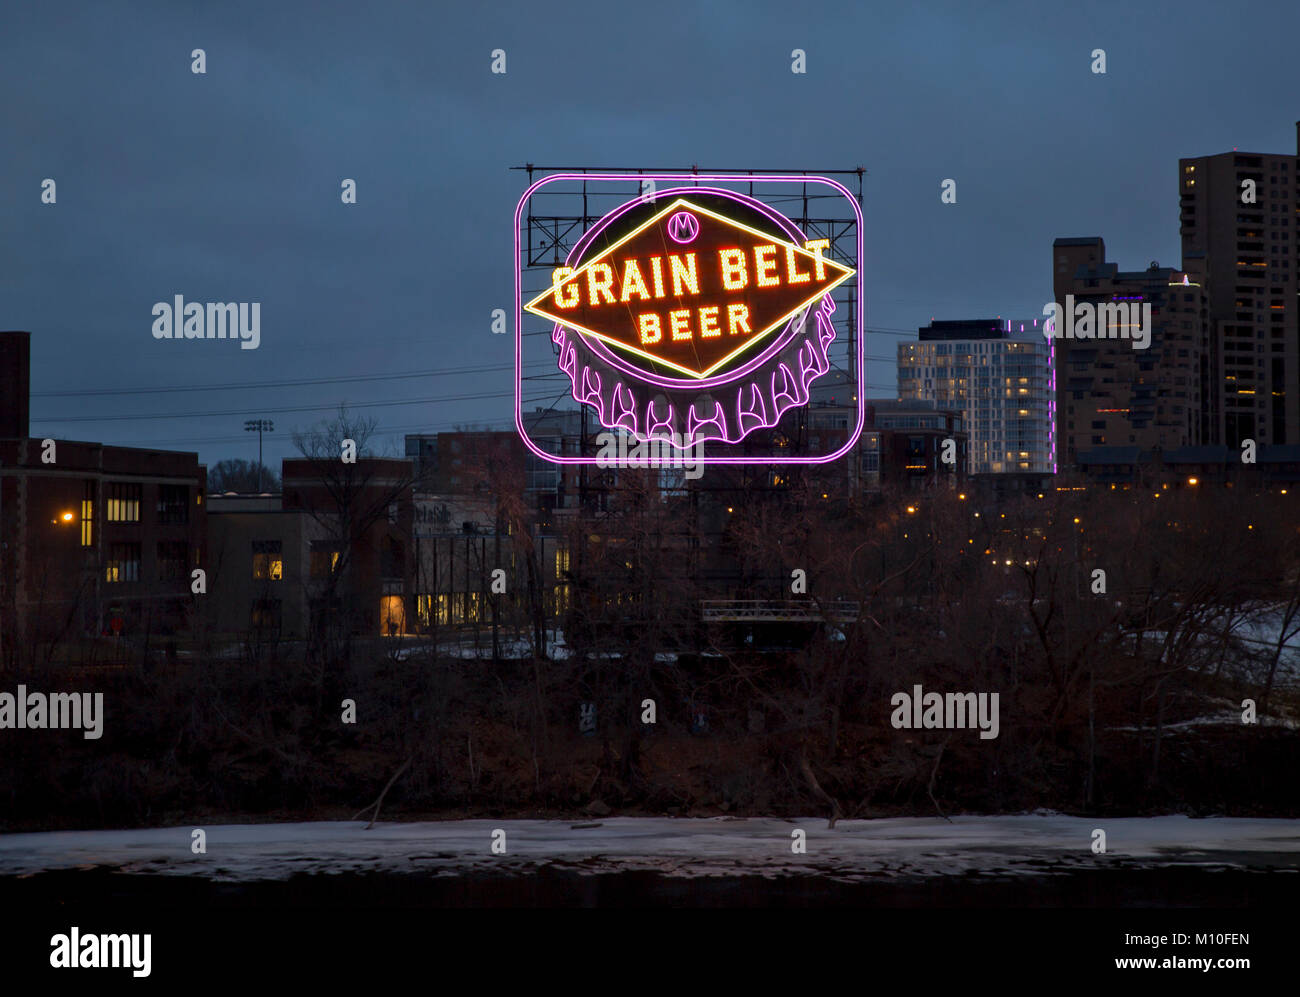 The iconic 1941 Grain Belt Beer sign in shades of neon purple in Minneapolis, Minnesota - The color purple is to - Stock Image